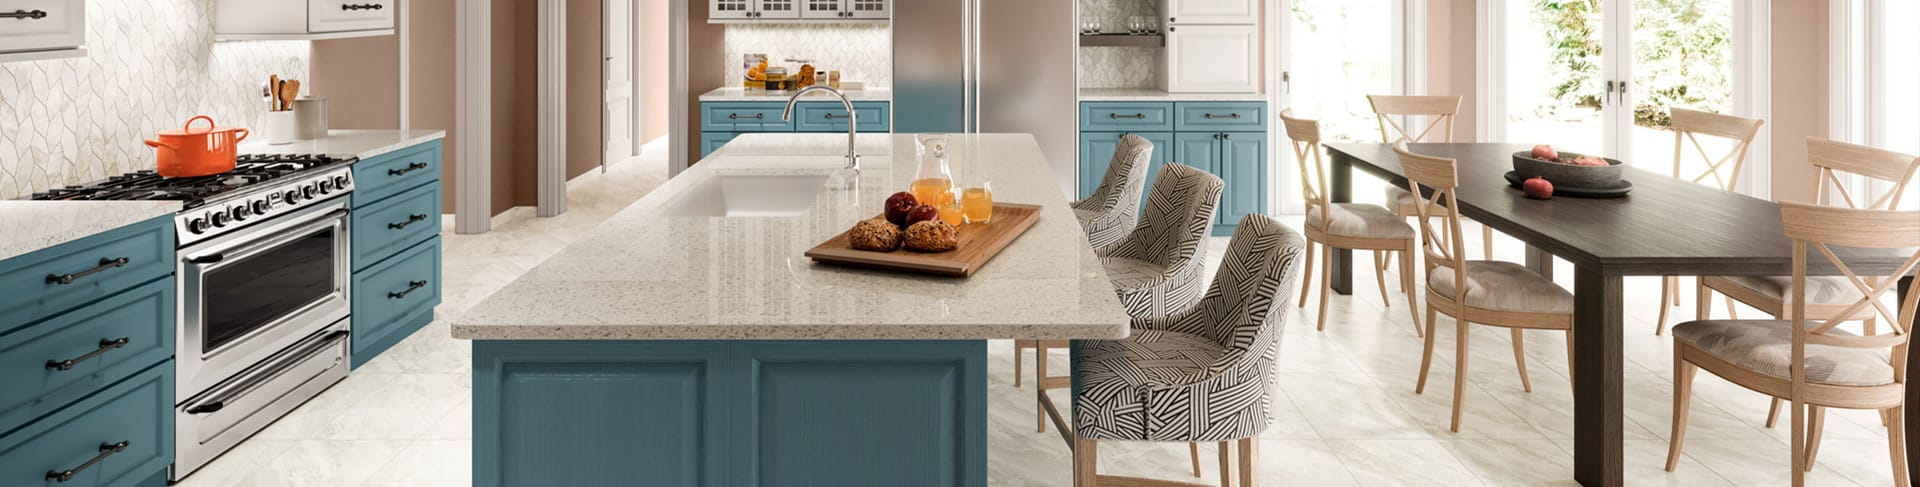 Beautiful porcelain tile kitchen with a marble look from the Atlas Concorde USA Impression Collection